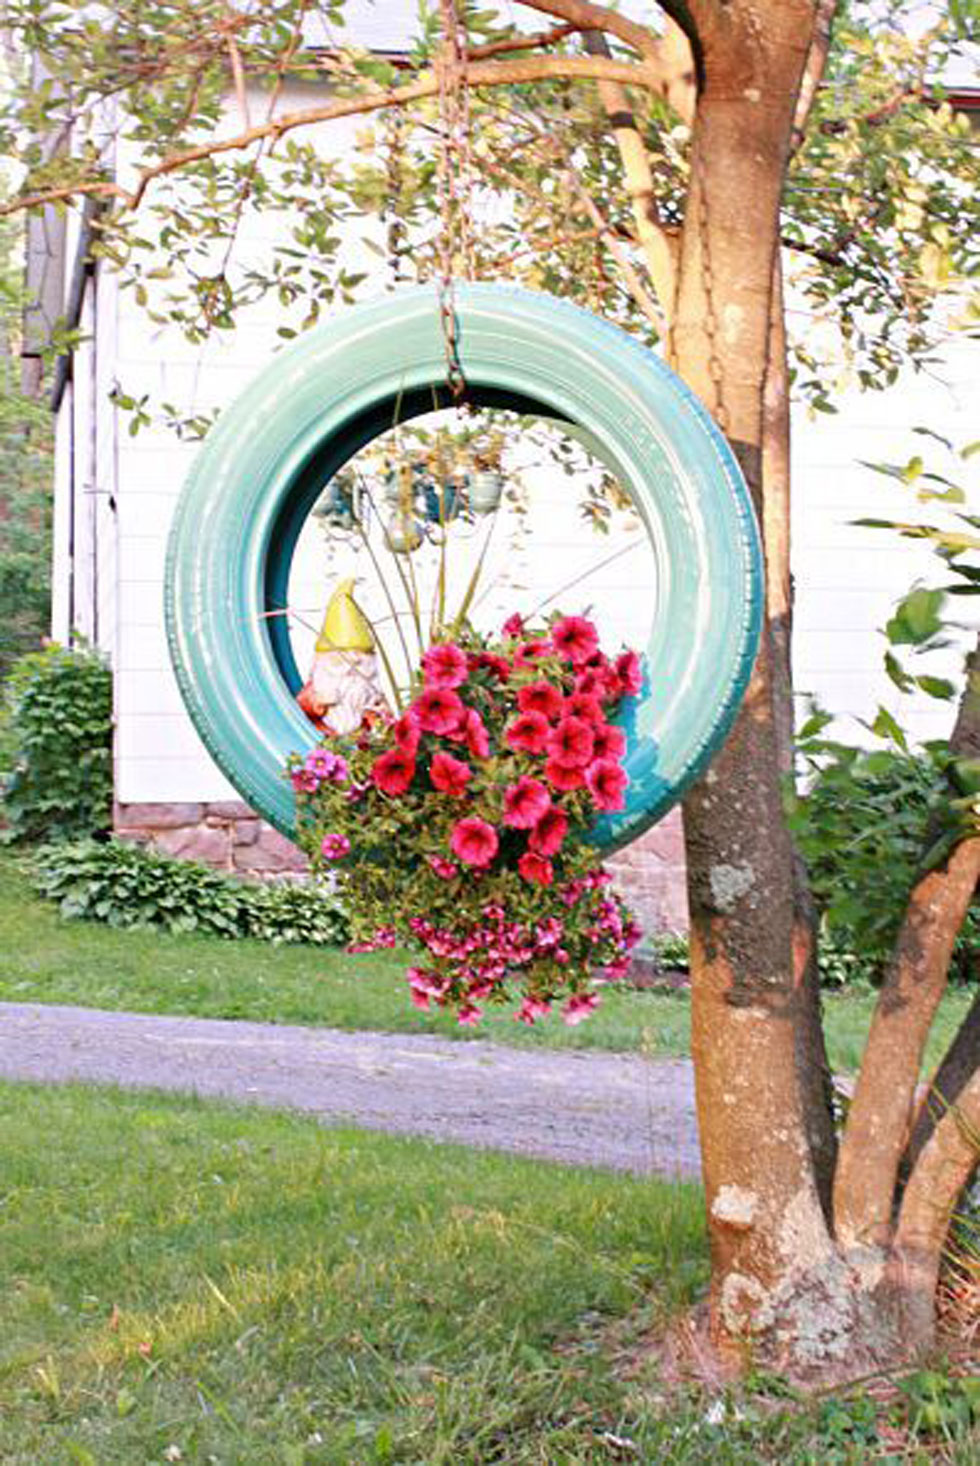 Homemade garden decor - Homemade Garden Decor 57